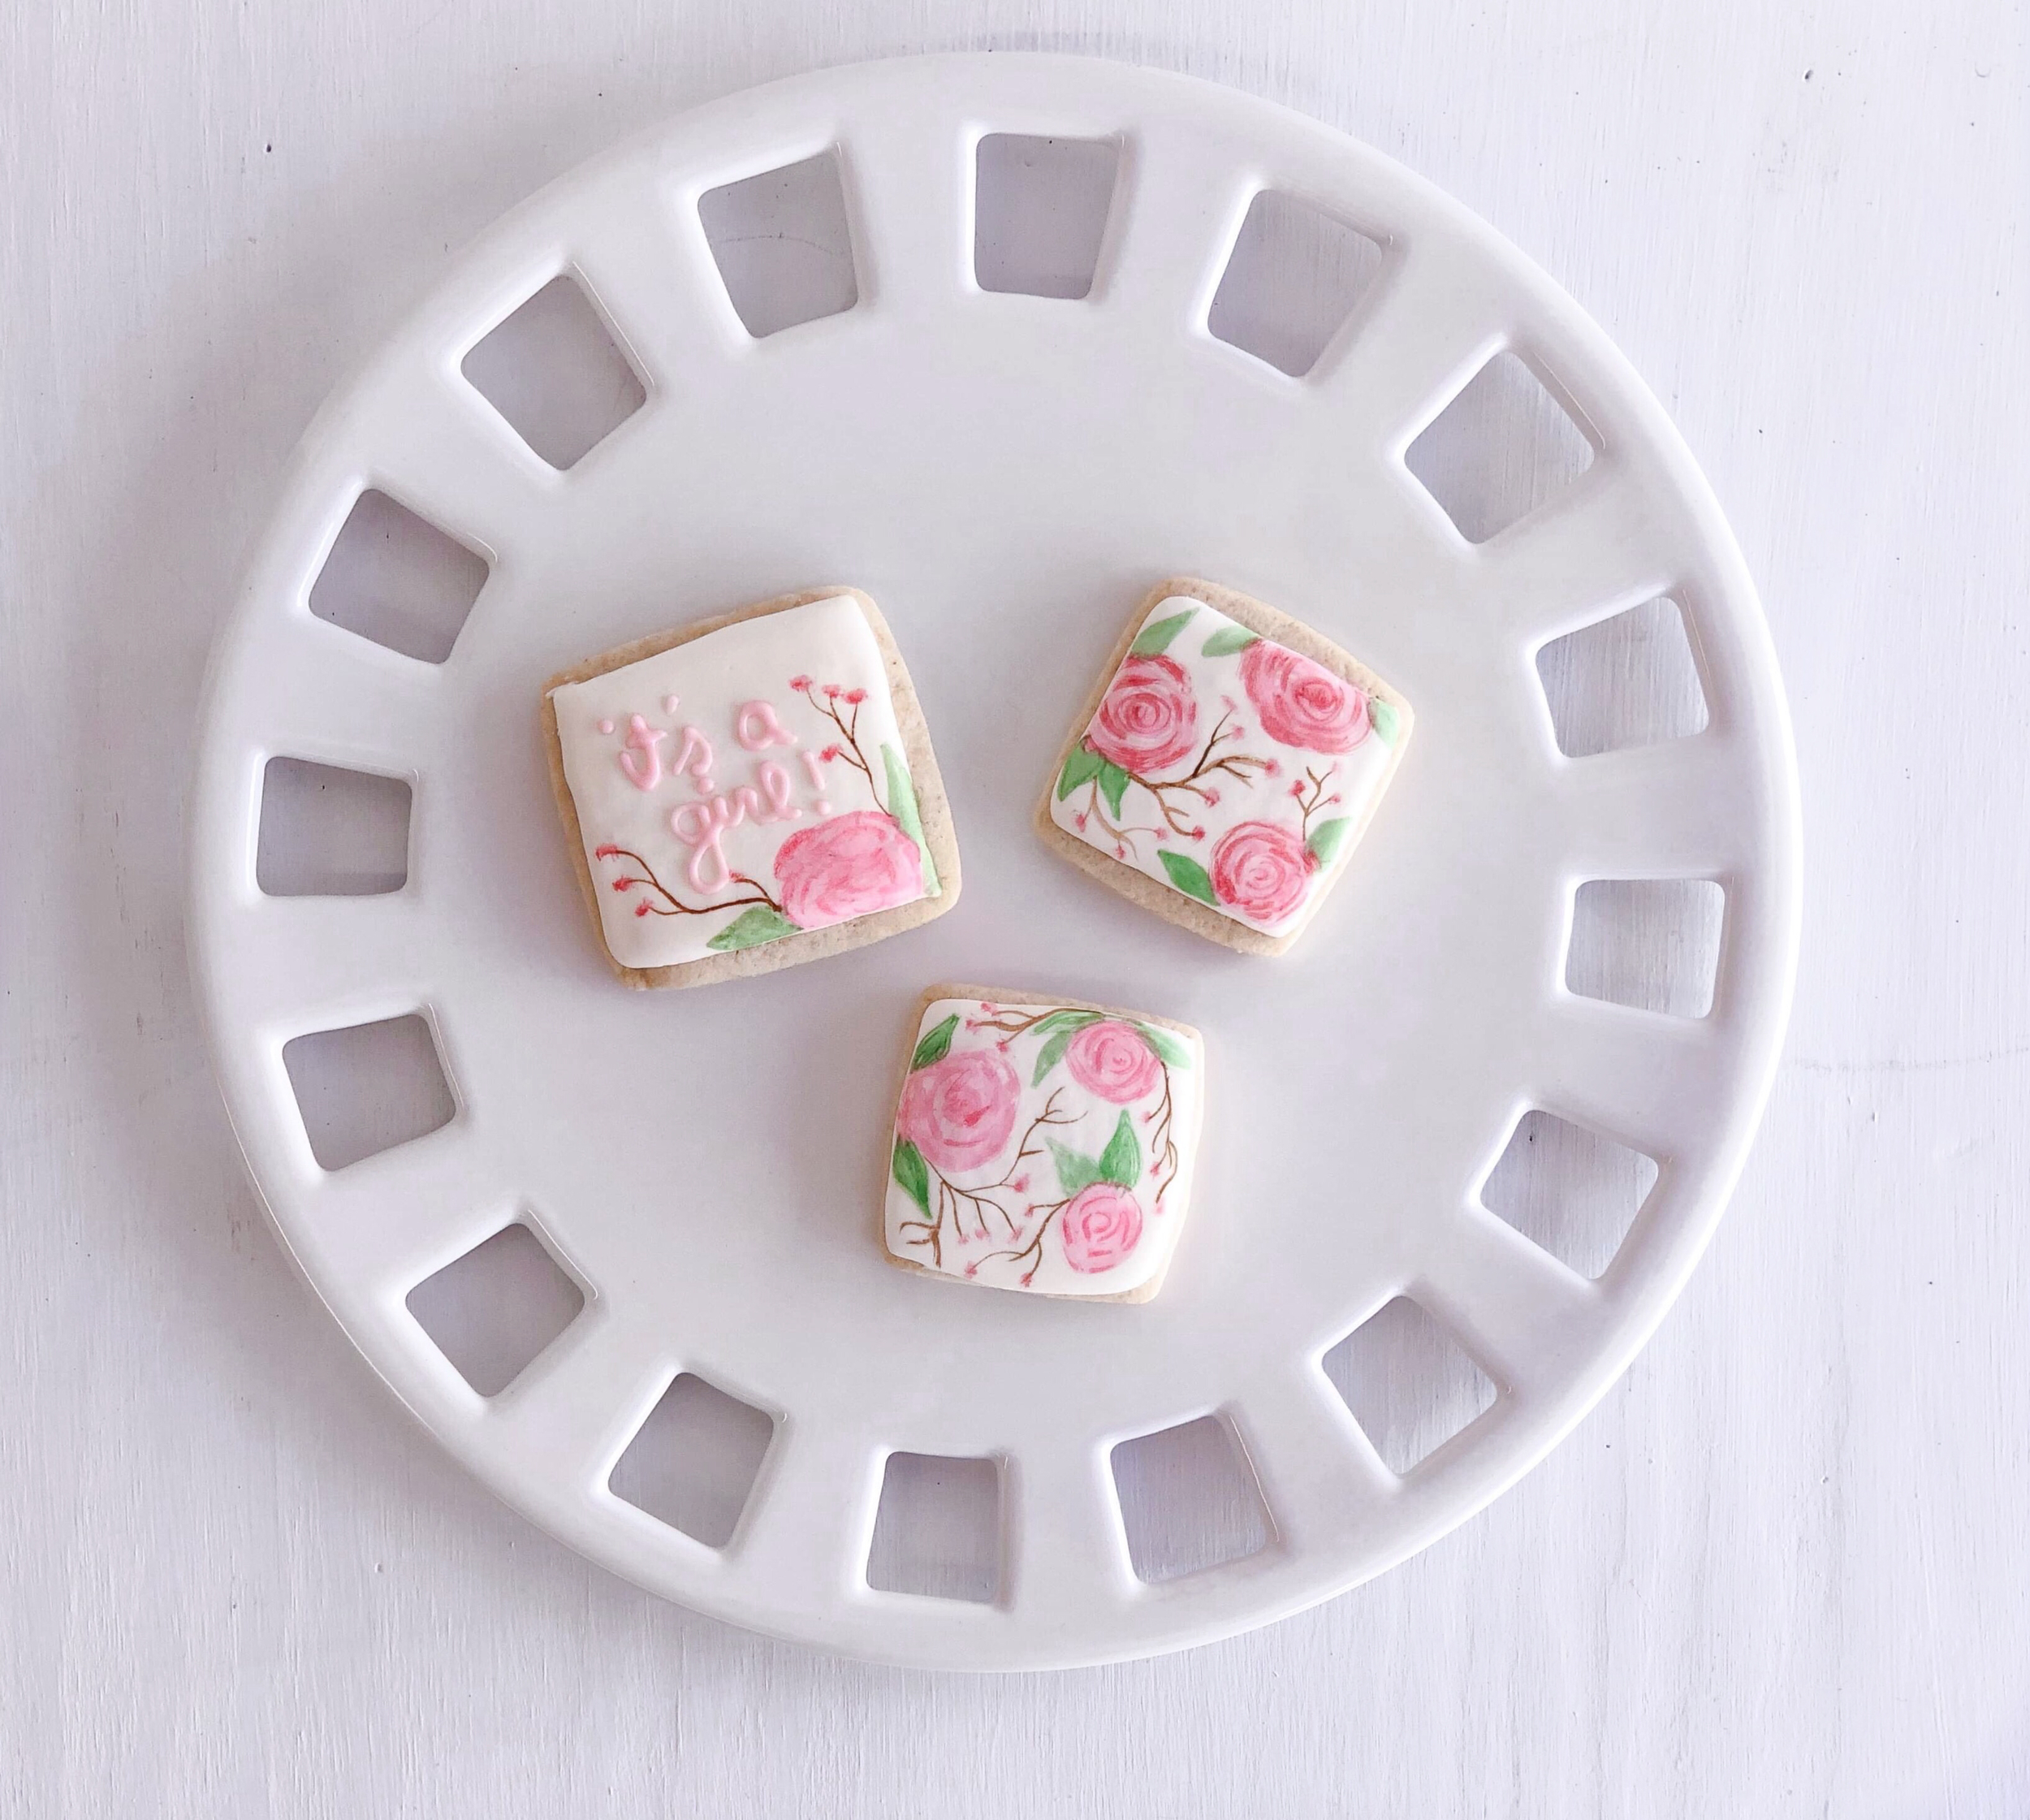 Floral Handpainted Sugar Cookies